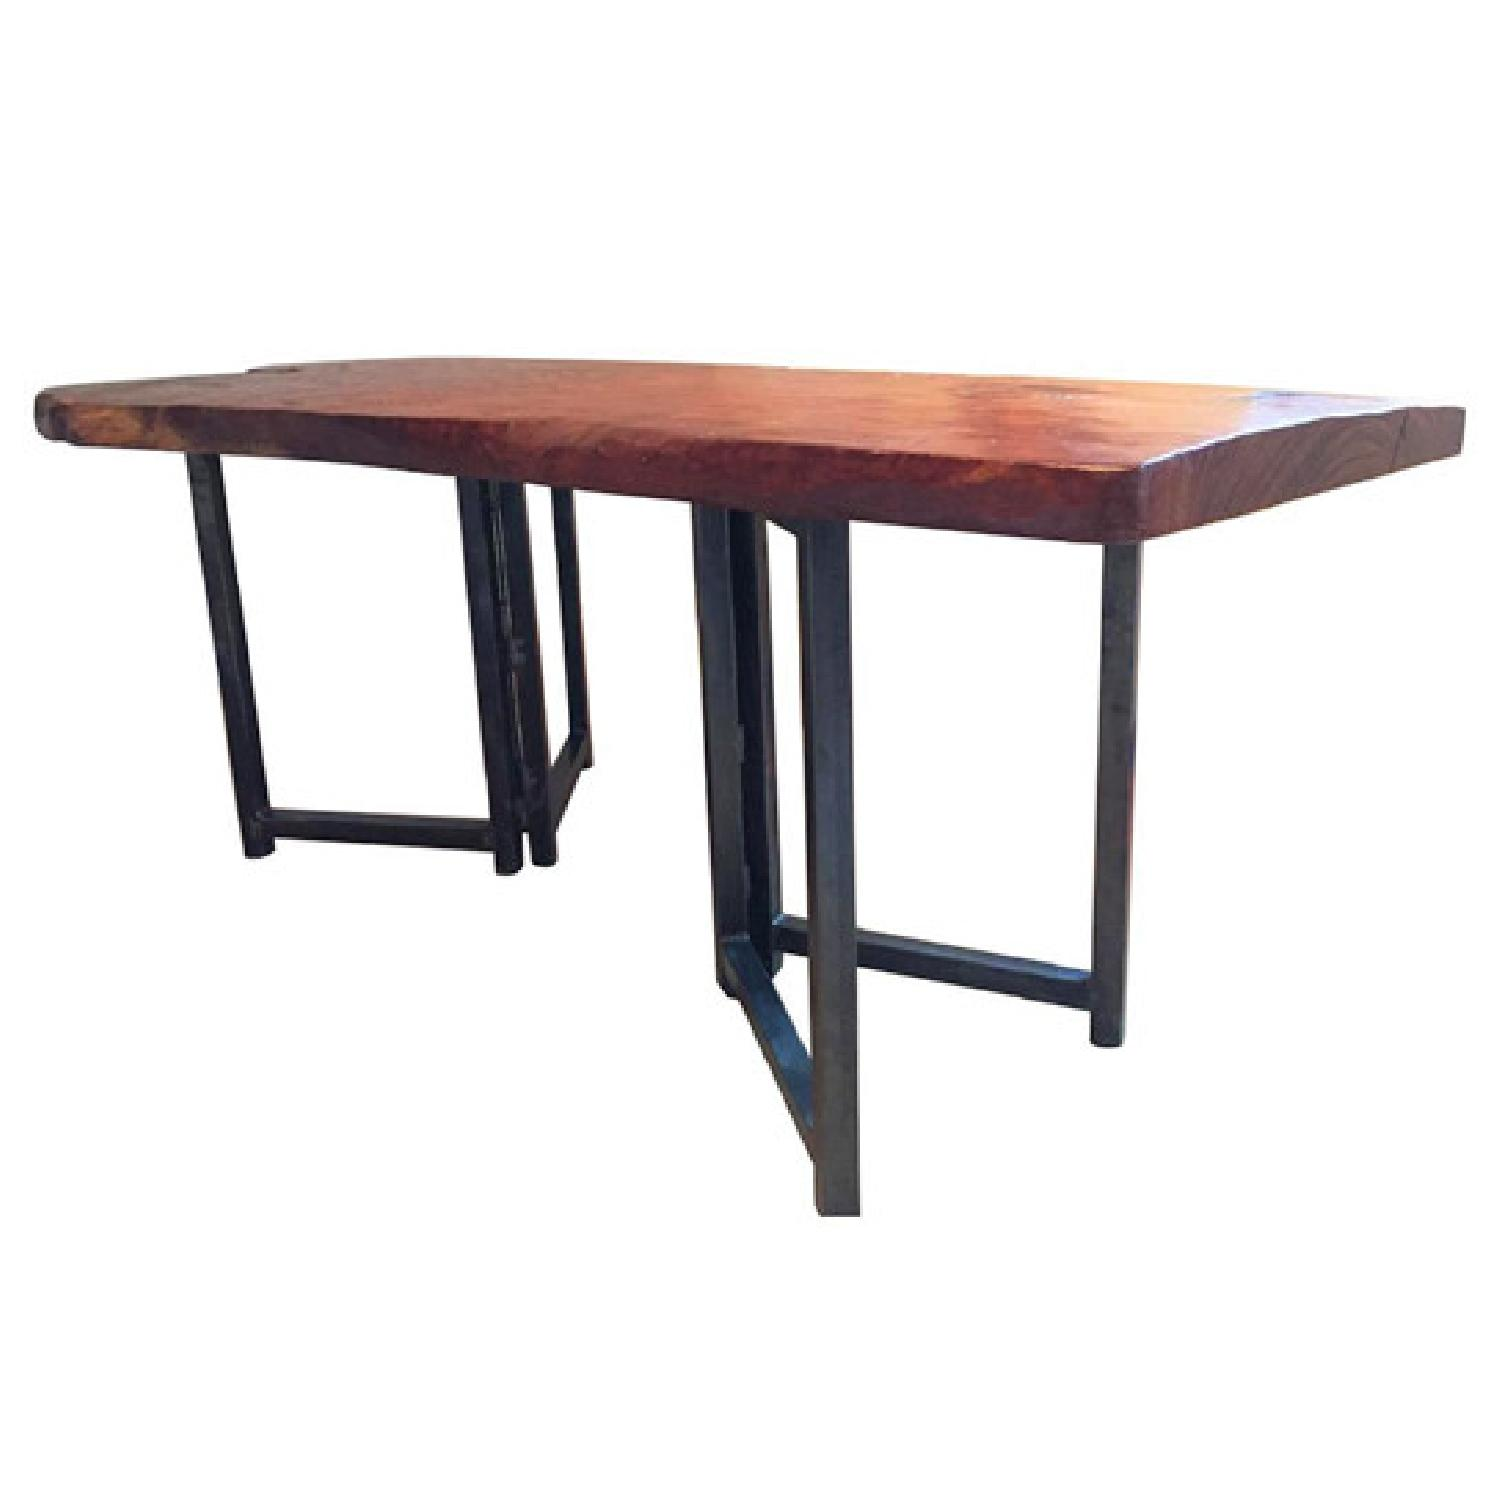 From The Source Hand-Crafted Teak Slab Dining Table - image-0